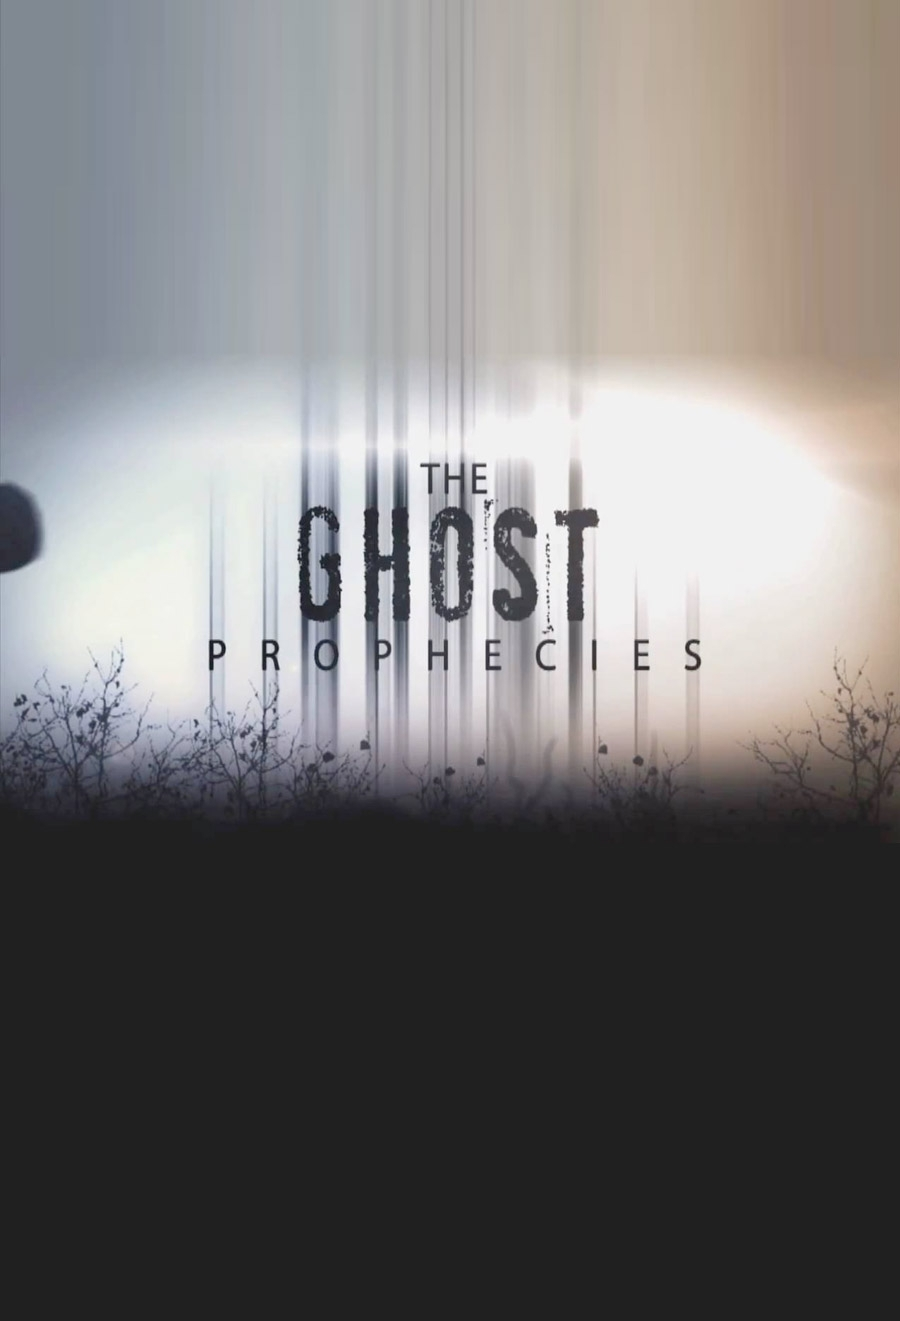 The Ghost Prophecies PPV